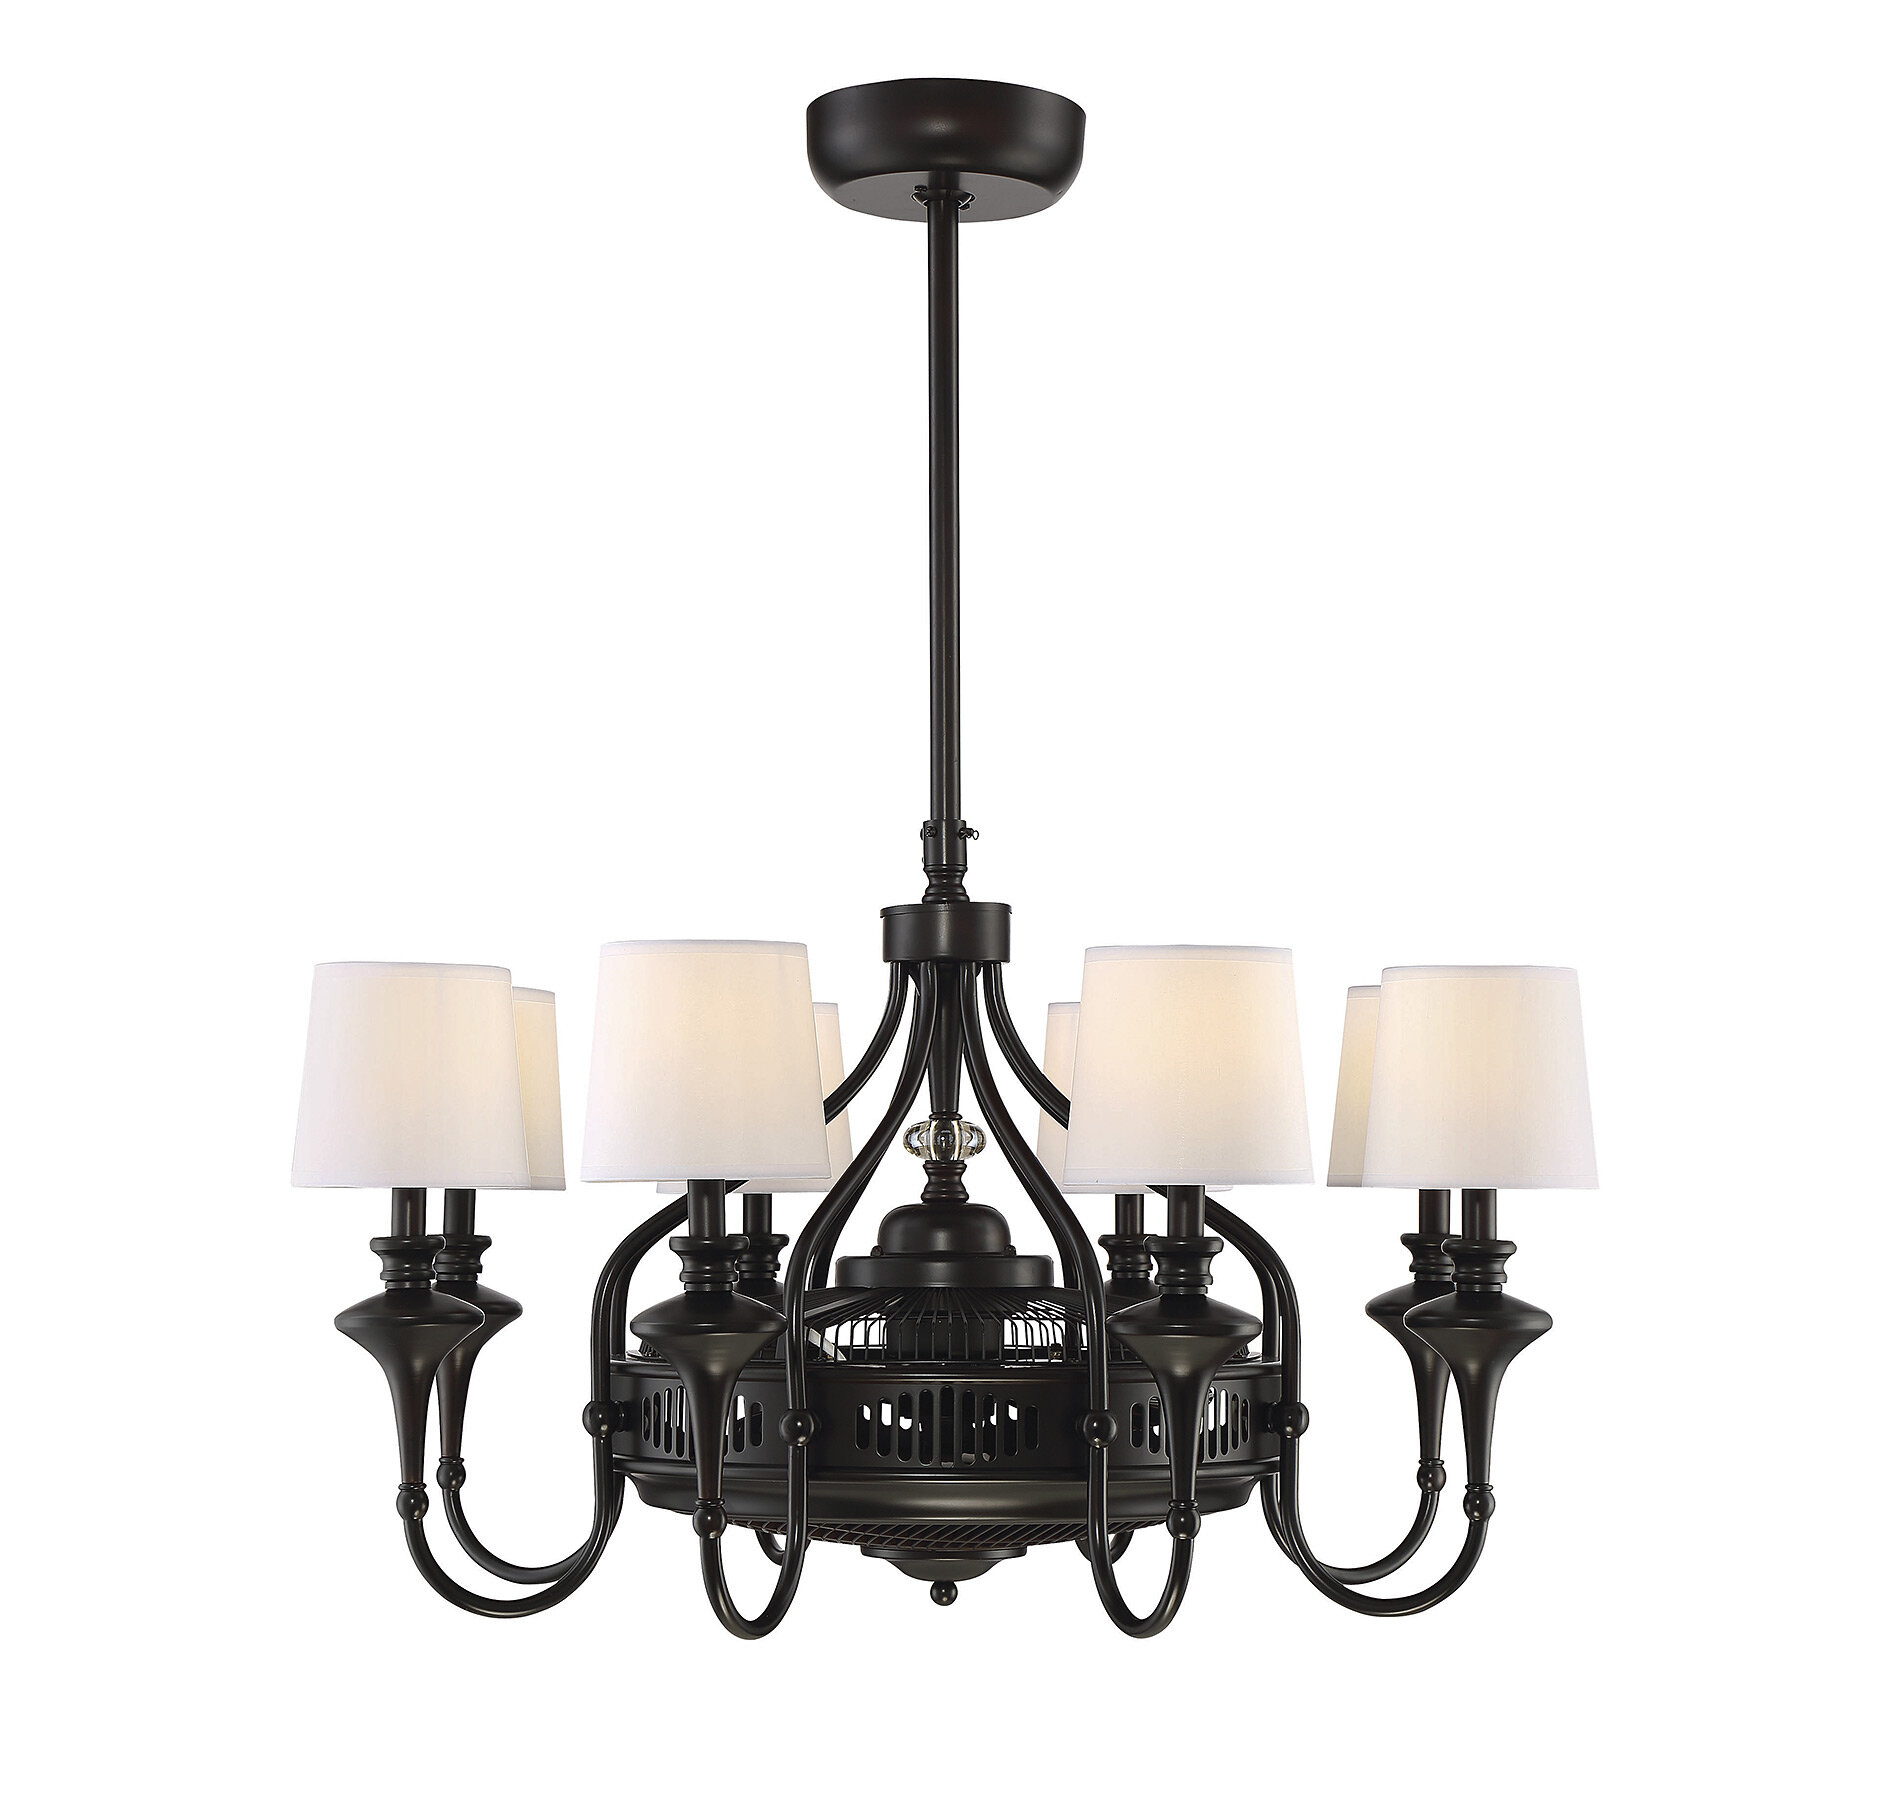 Brennan Ceiling Fan Chandelier & Reviews